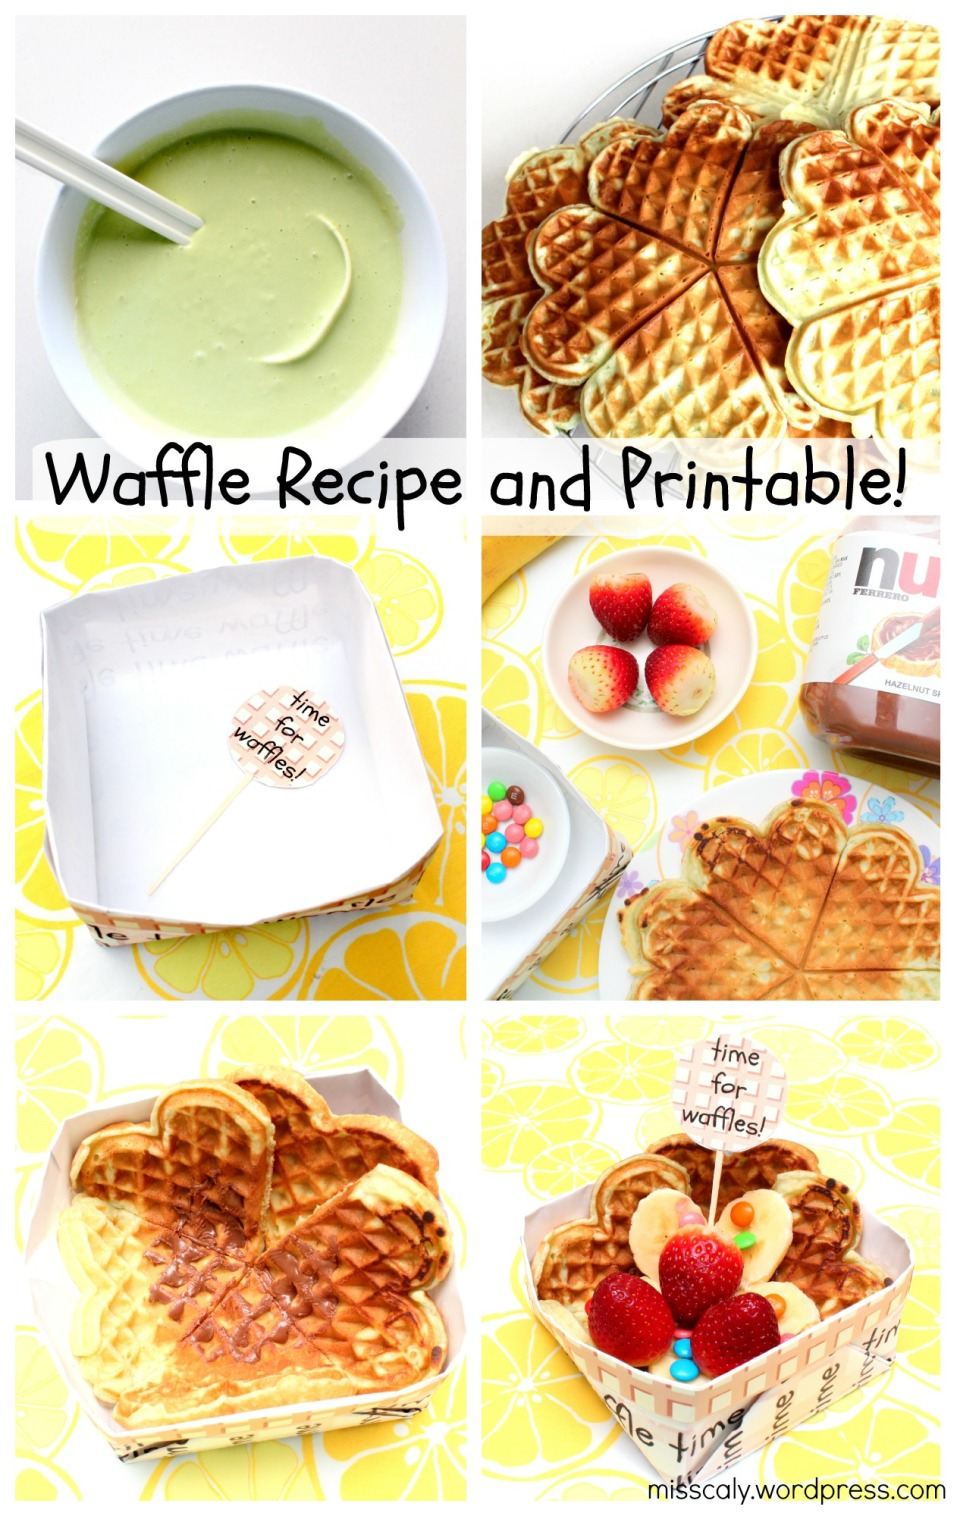 waffle recipe and printable!